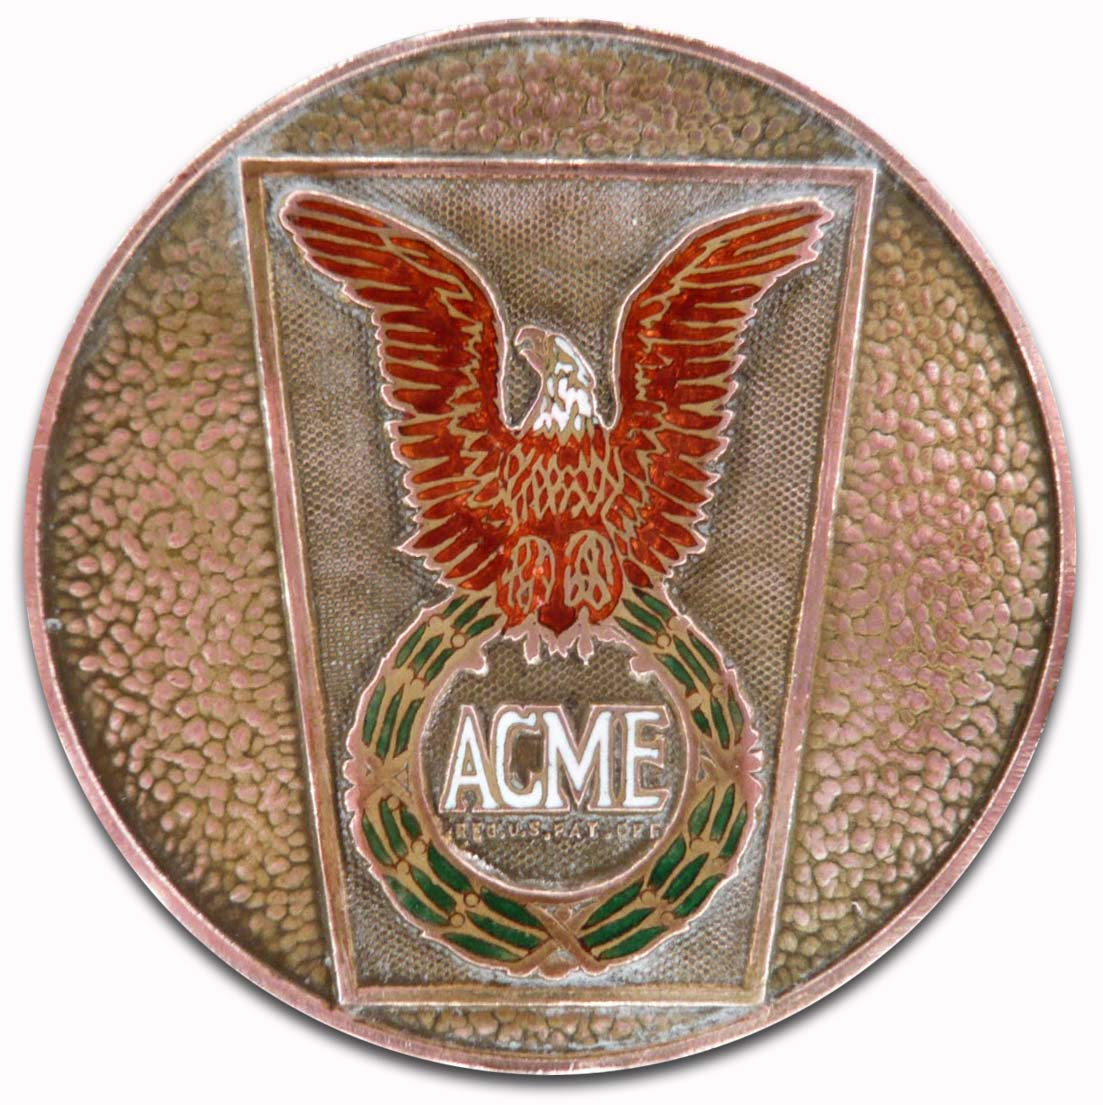 Acme Motor Car Co. (1910)